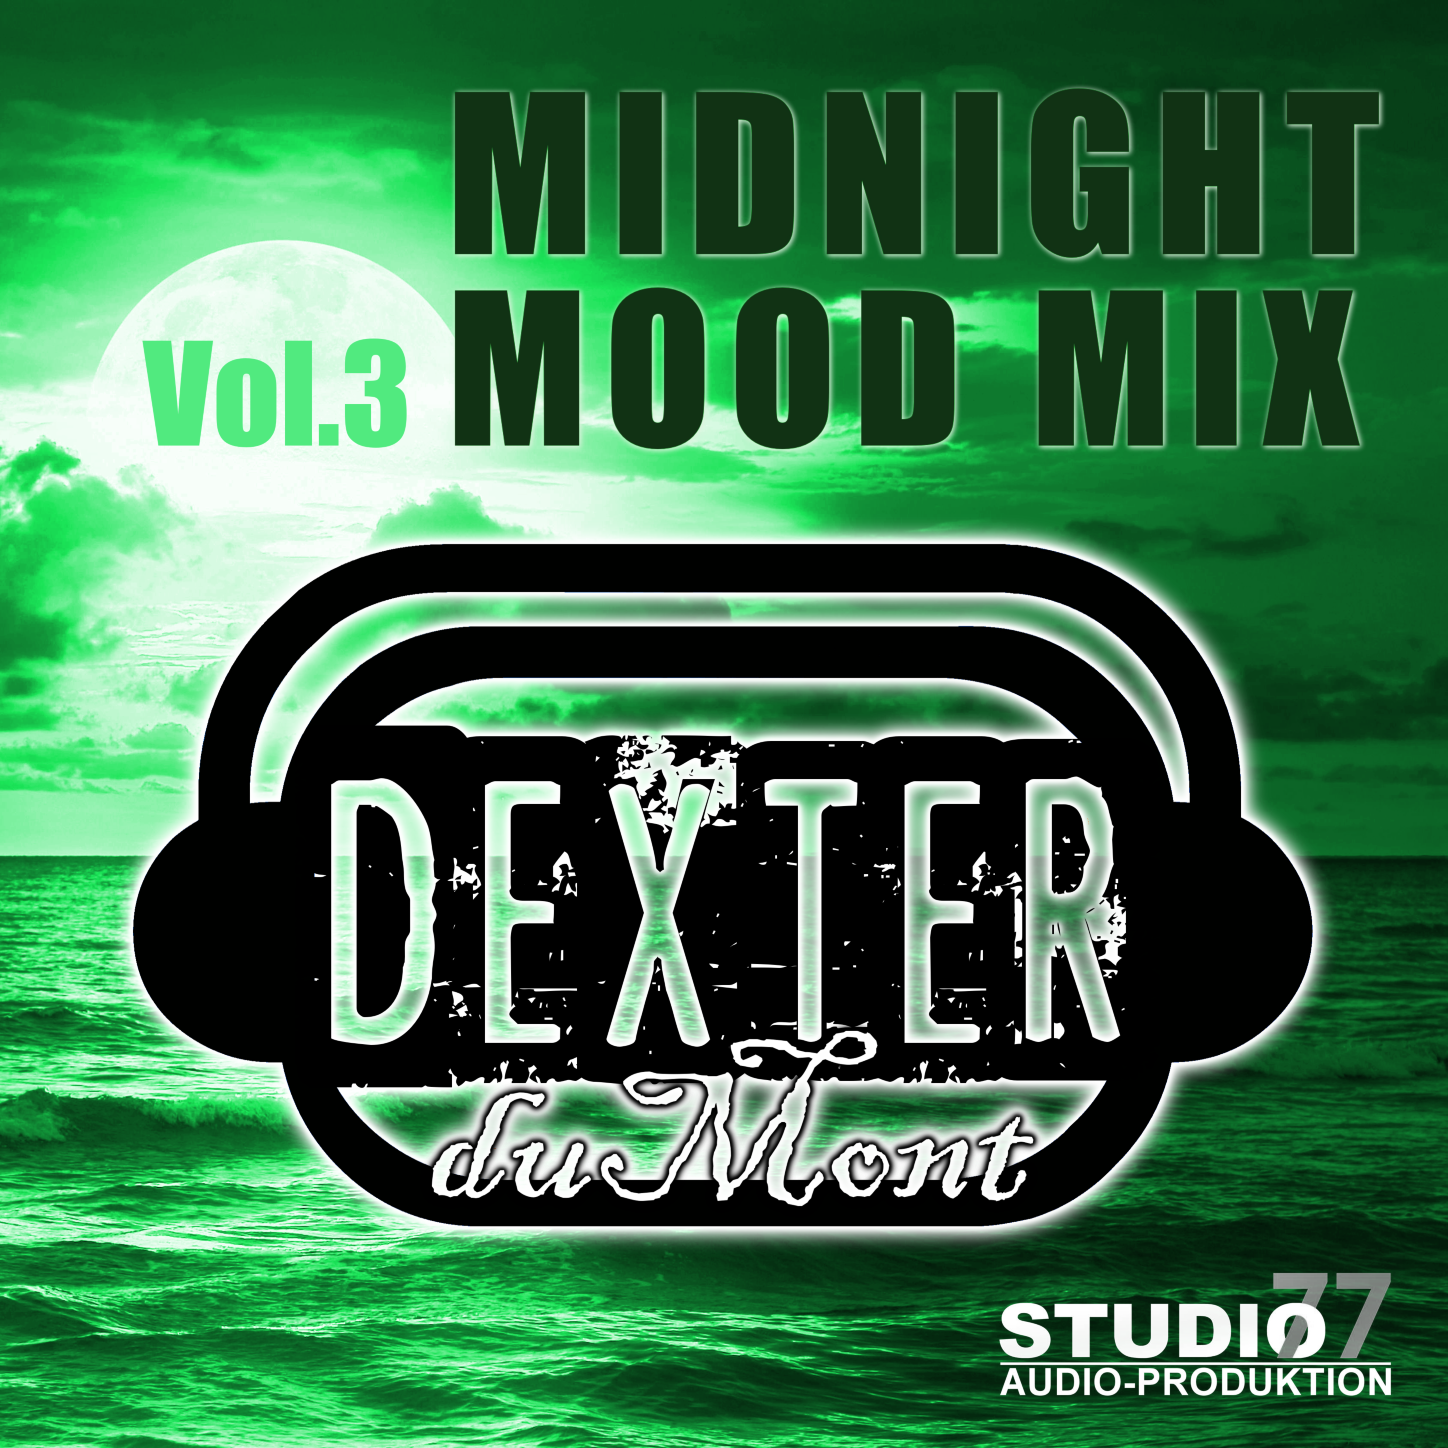 COVER_CD - Midnight Mood Mix - Vol 3